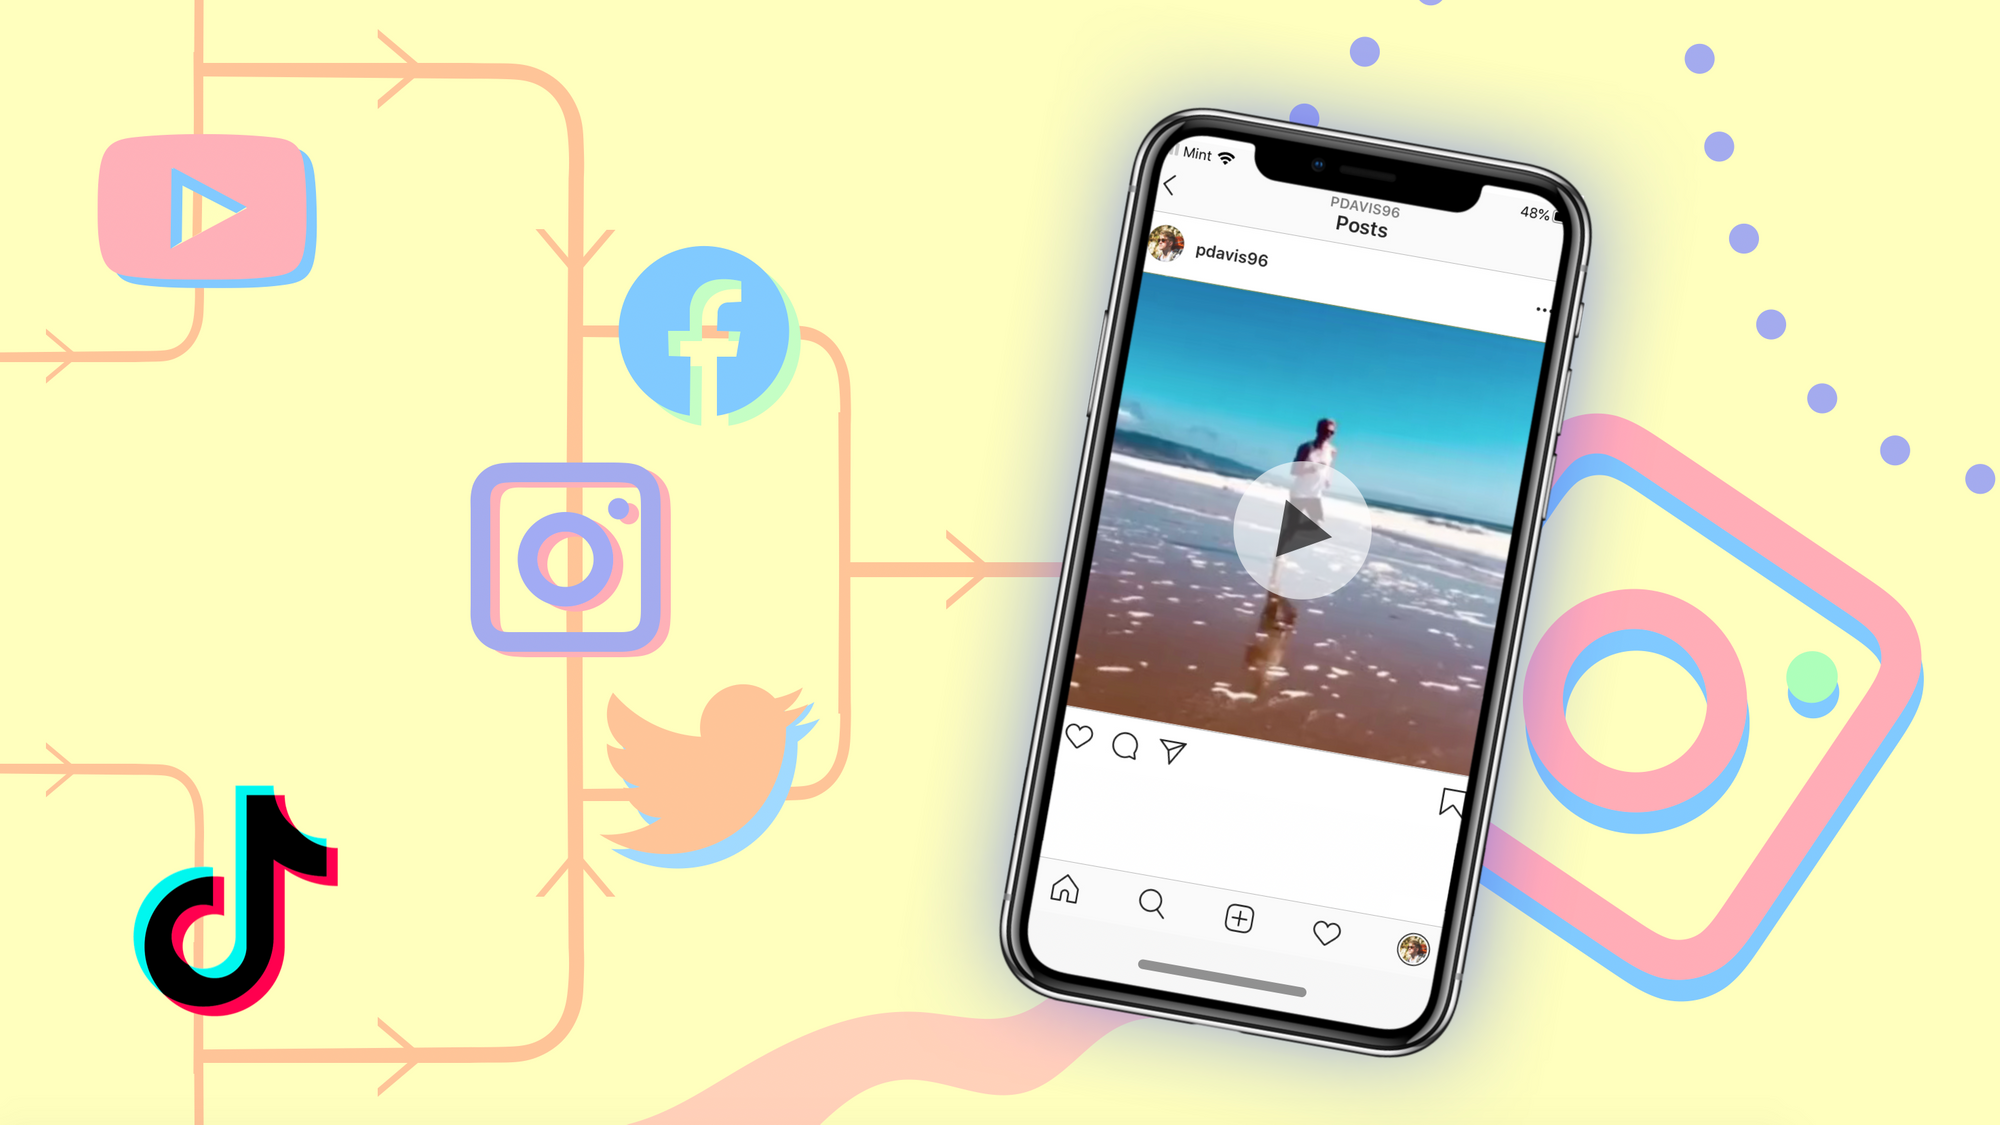 How to Repost Videos from Anywhere to Instagram